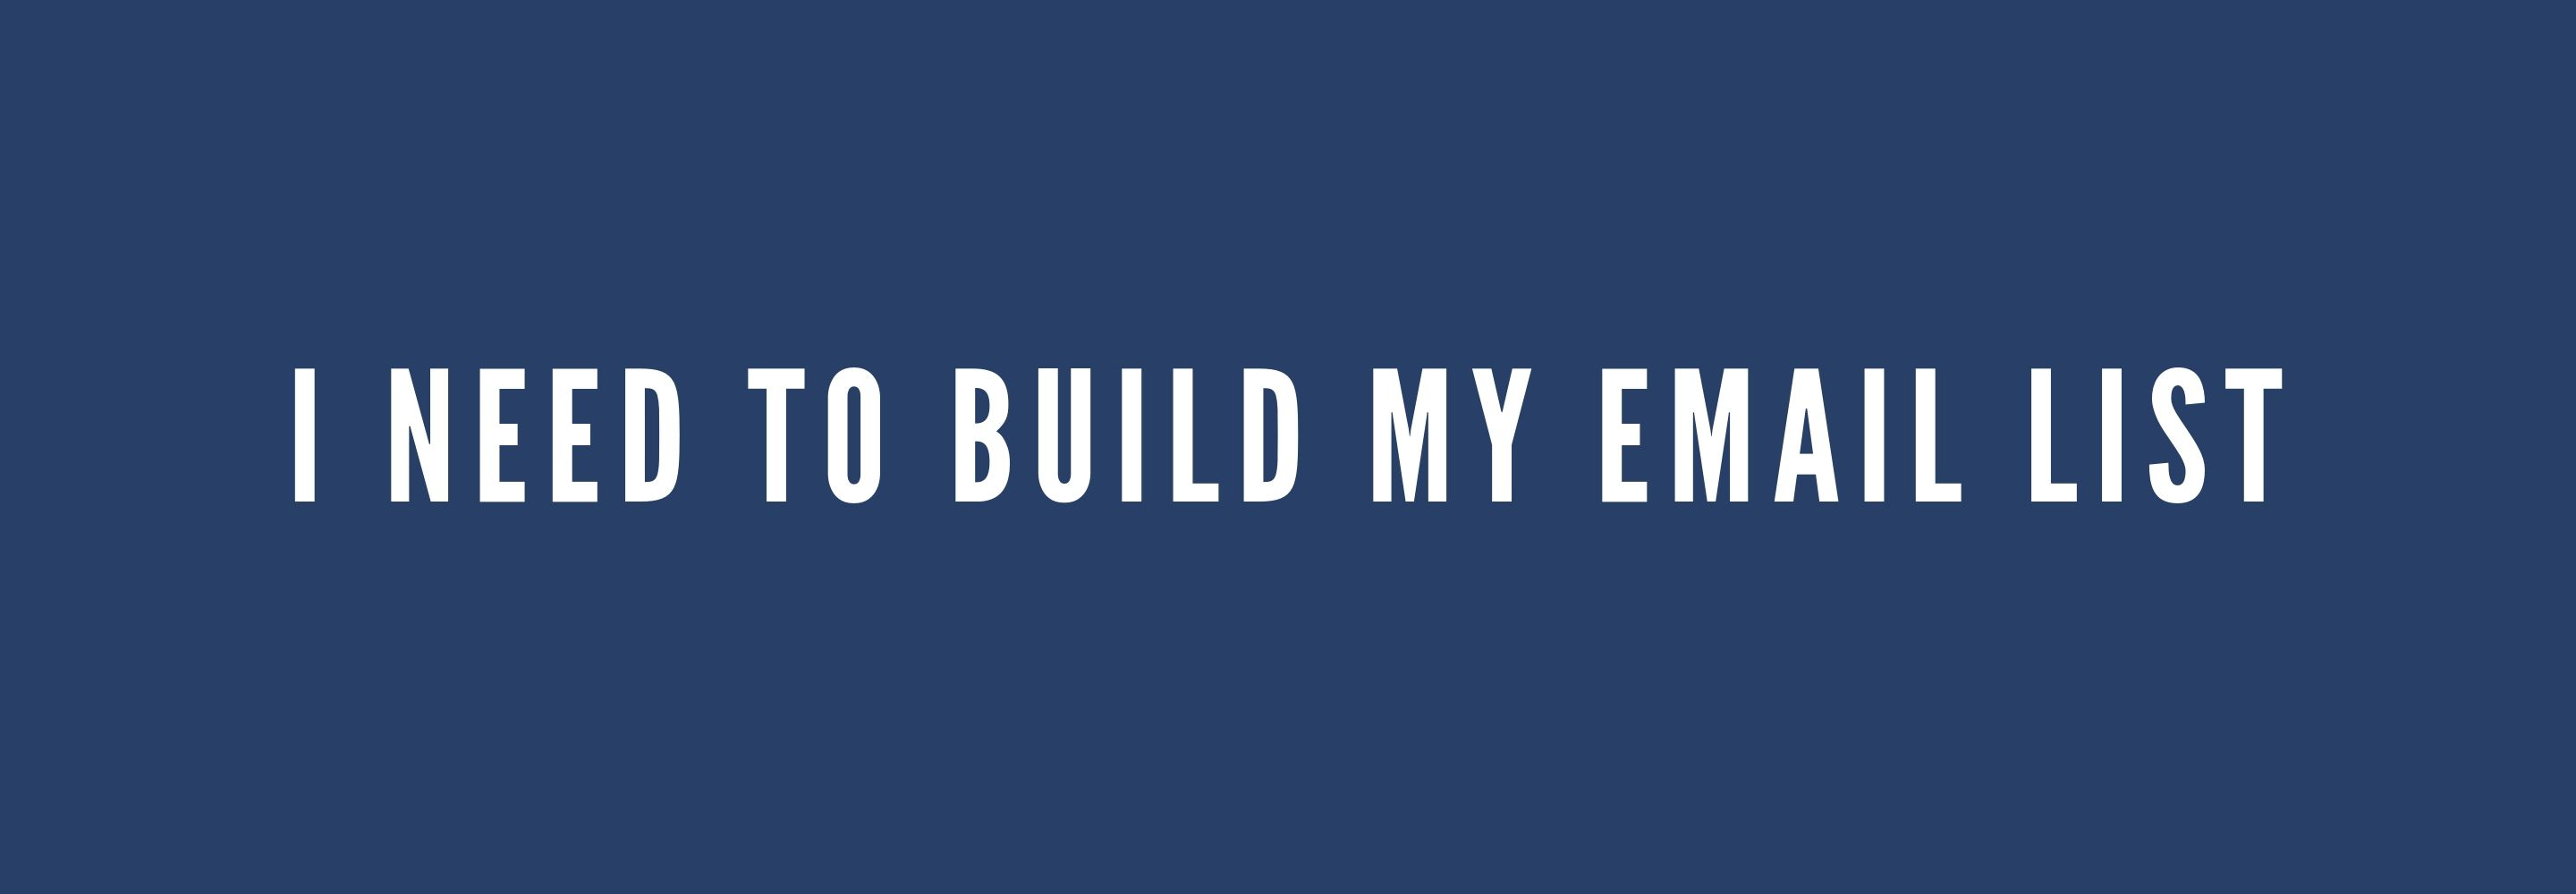 I need to build my email list